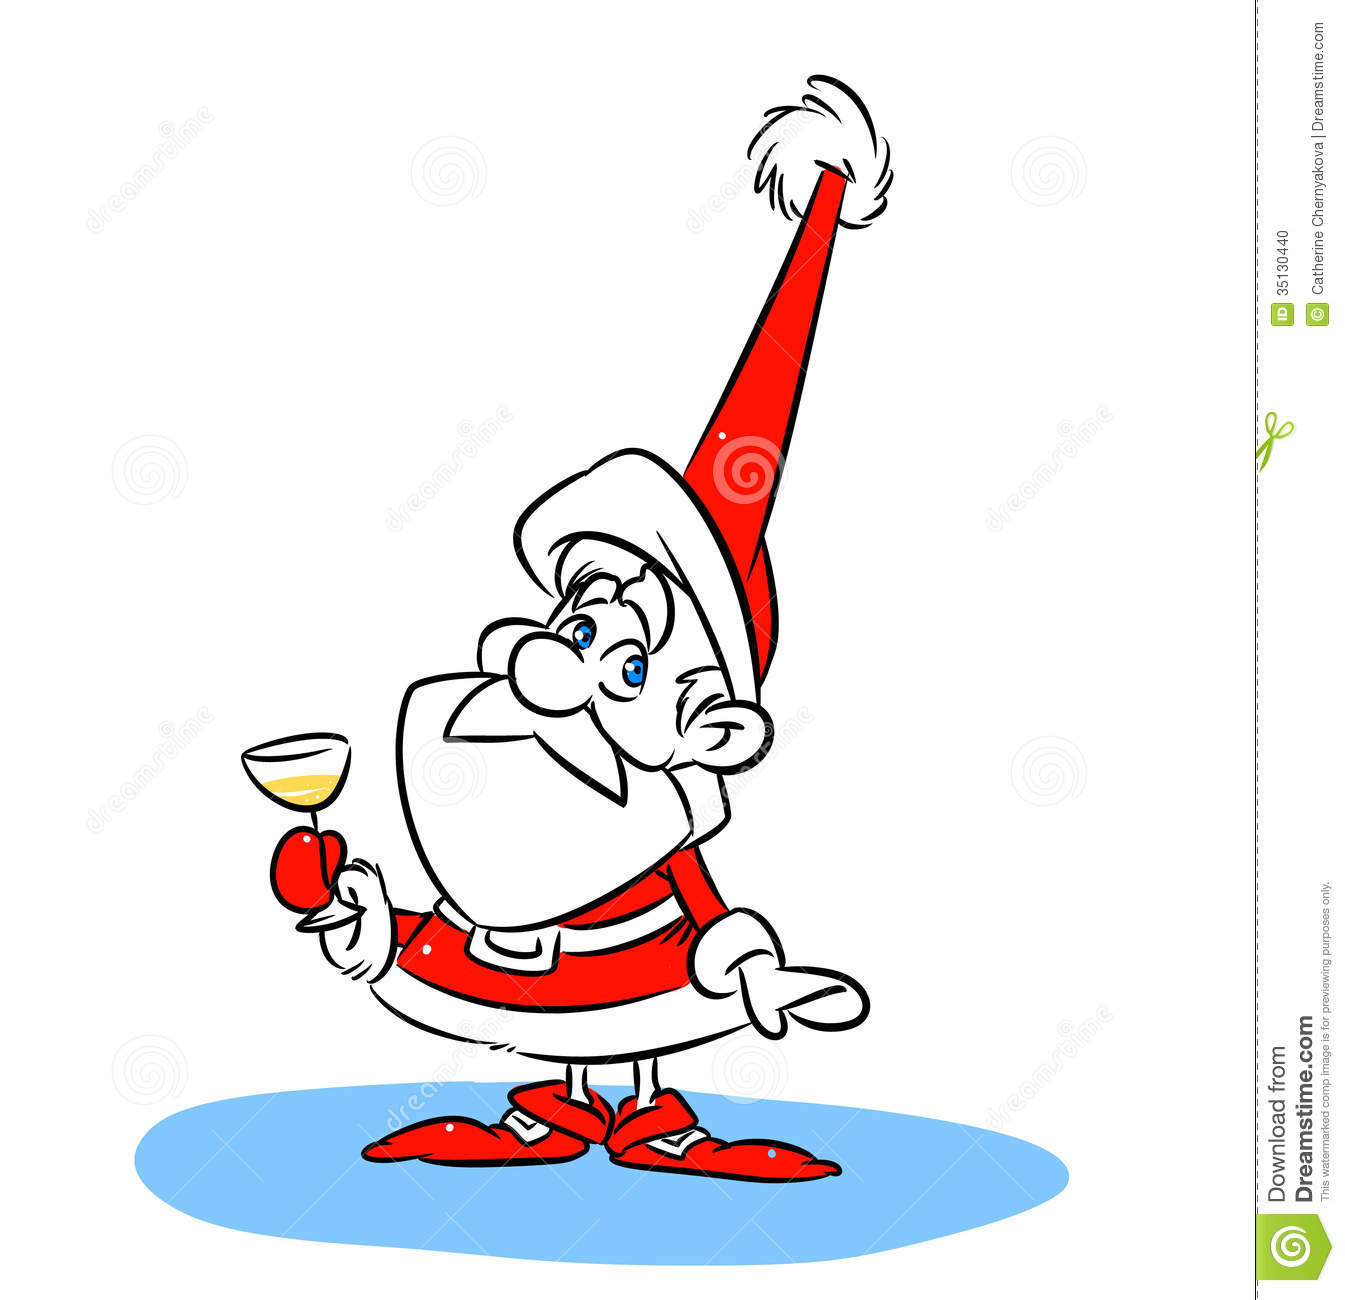 Santa Claus Christmas Champagne Stock Photo - Image: 35130440